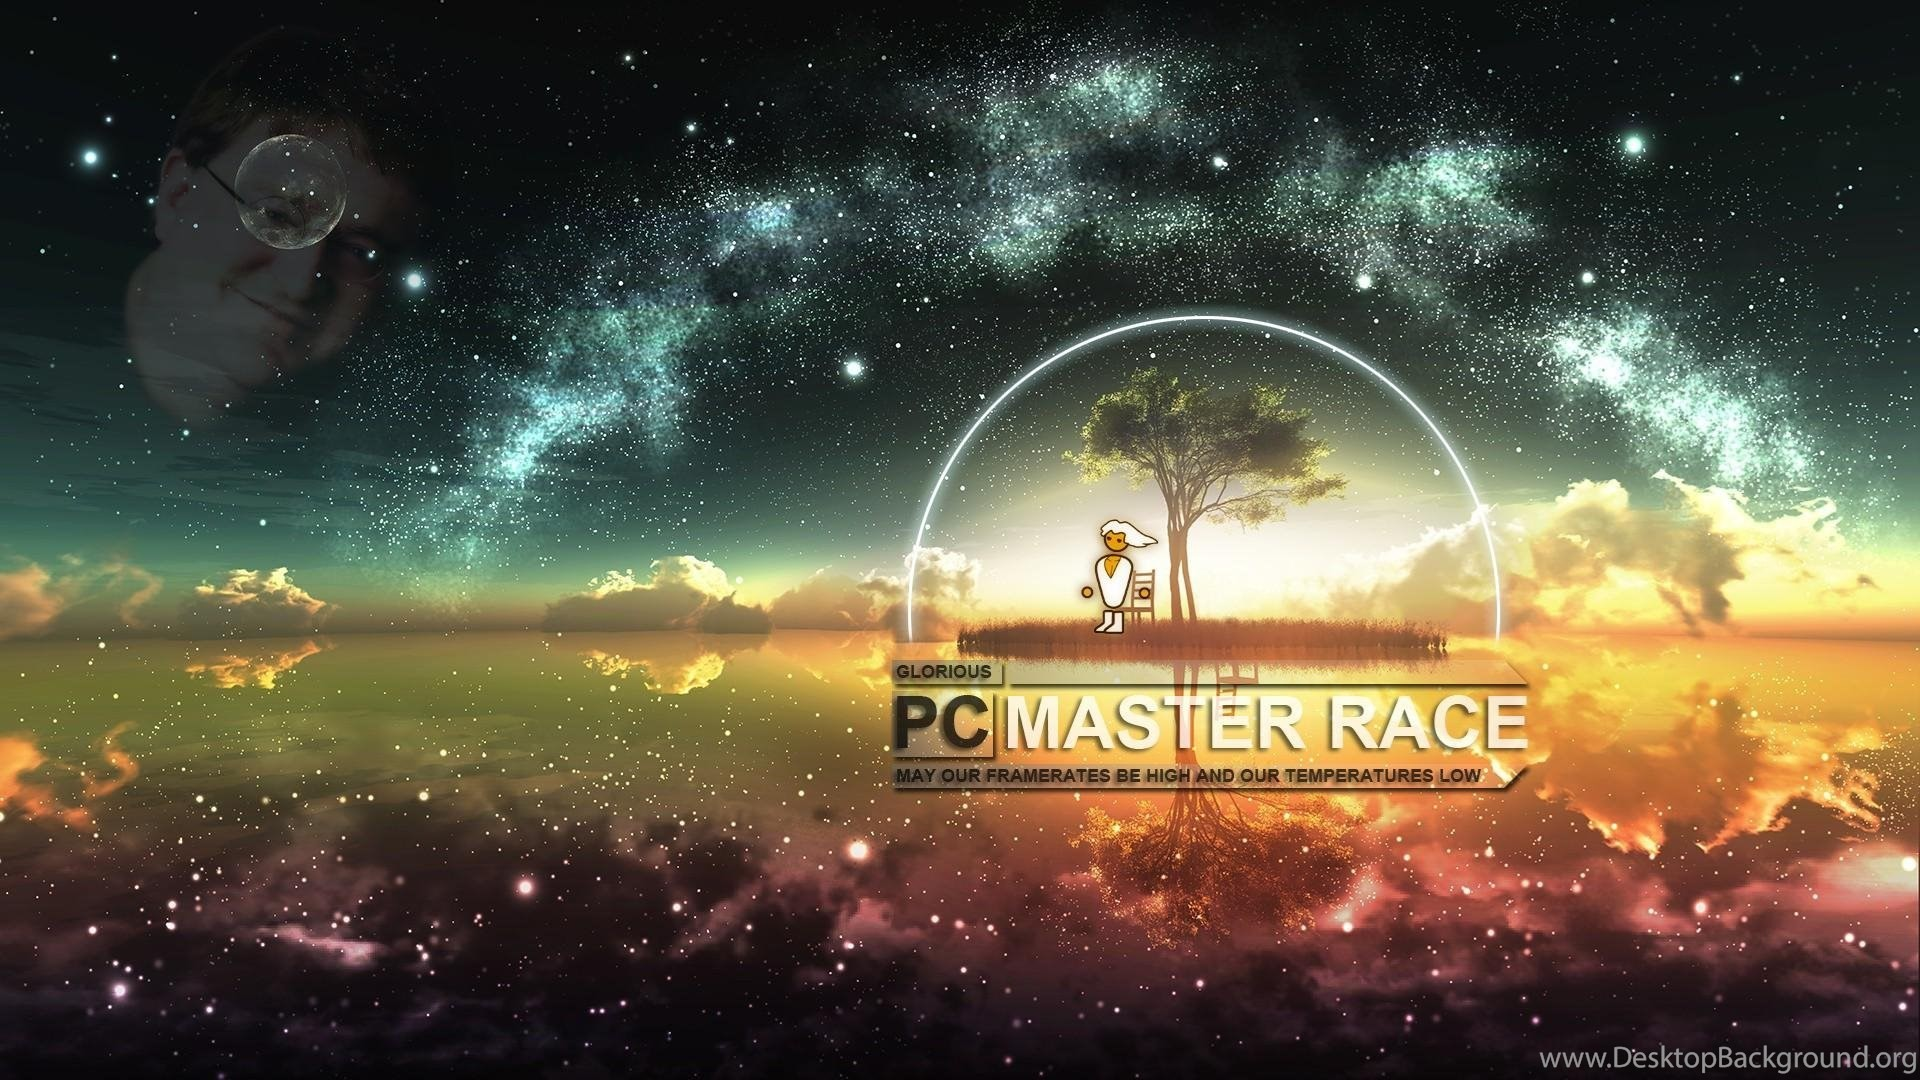 1920x1080 Awesome Wallpaper, PCMASTERRACE! : PCmasterrace